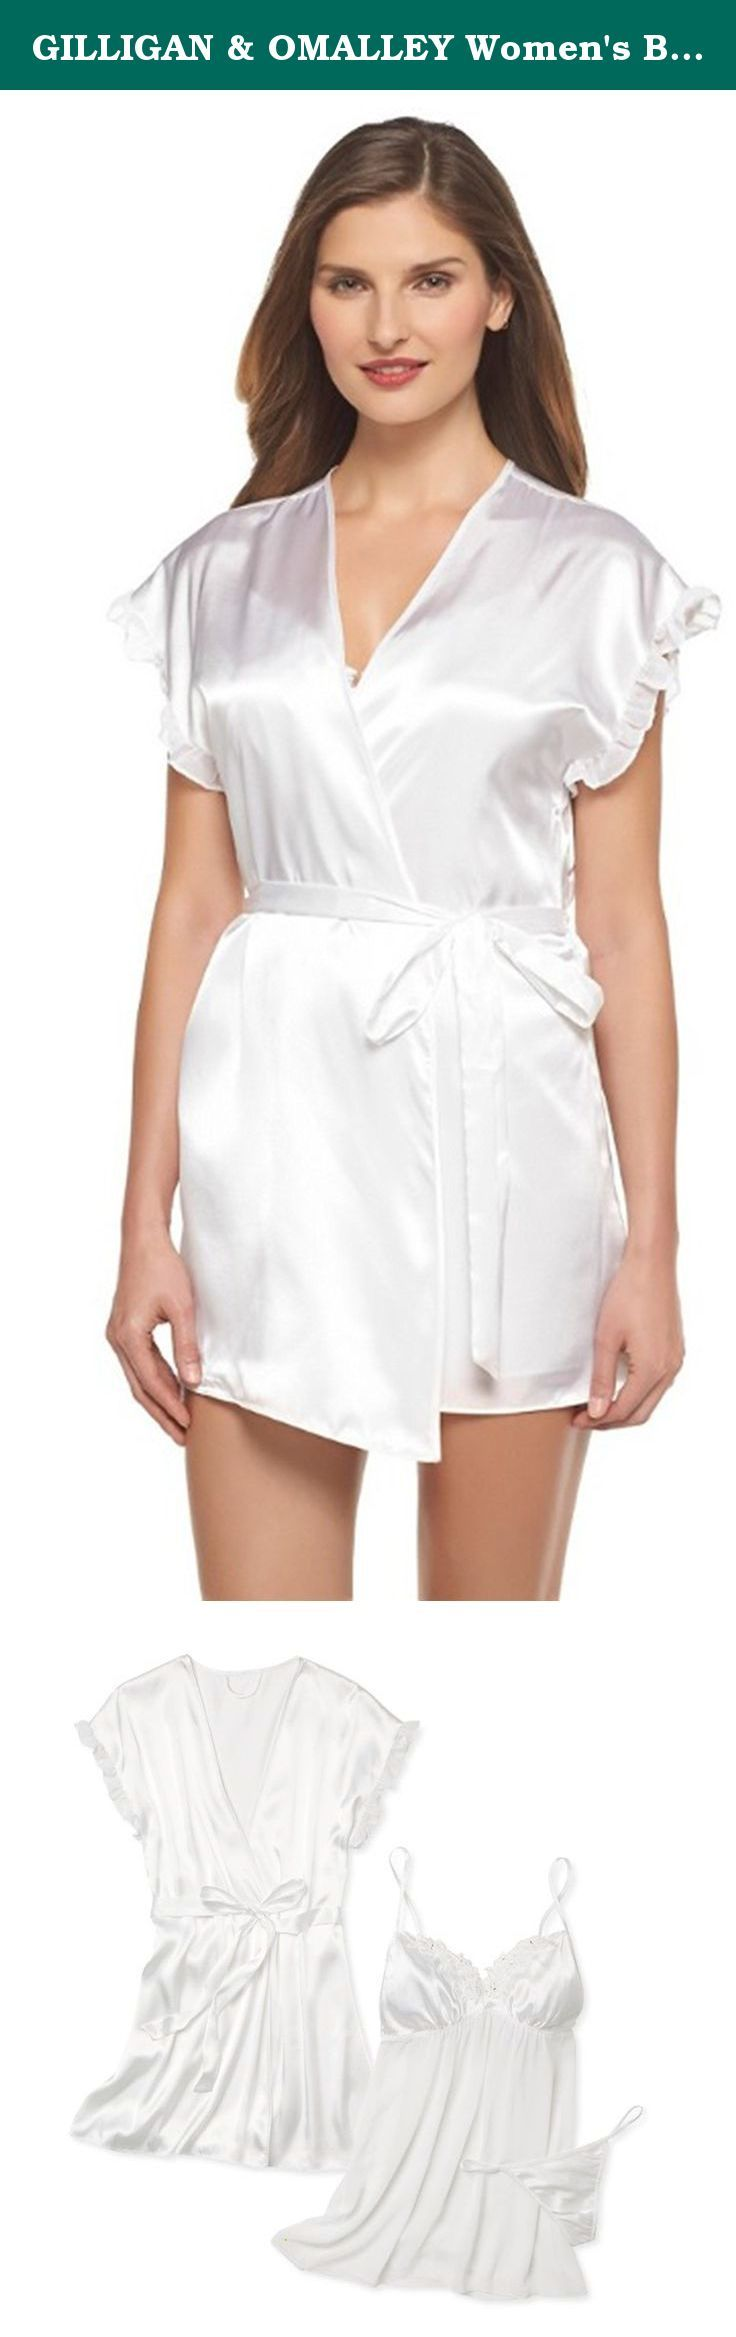 GILLIGAN & OMALLEY Women's Bridal Babydoll with Robe True White (Small, White Opaque). Perfect for bridal or spicing up your everyday look, this Women's Bridal Babydoll with Robe in True White by Gilligan & O'Malley® is a 3-piece lingerie set that gives you a flirty look in a snap. The babydoll fit adds a flattering touch, while the silky robe is ultra-luxurious.